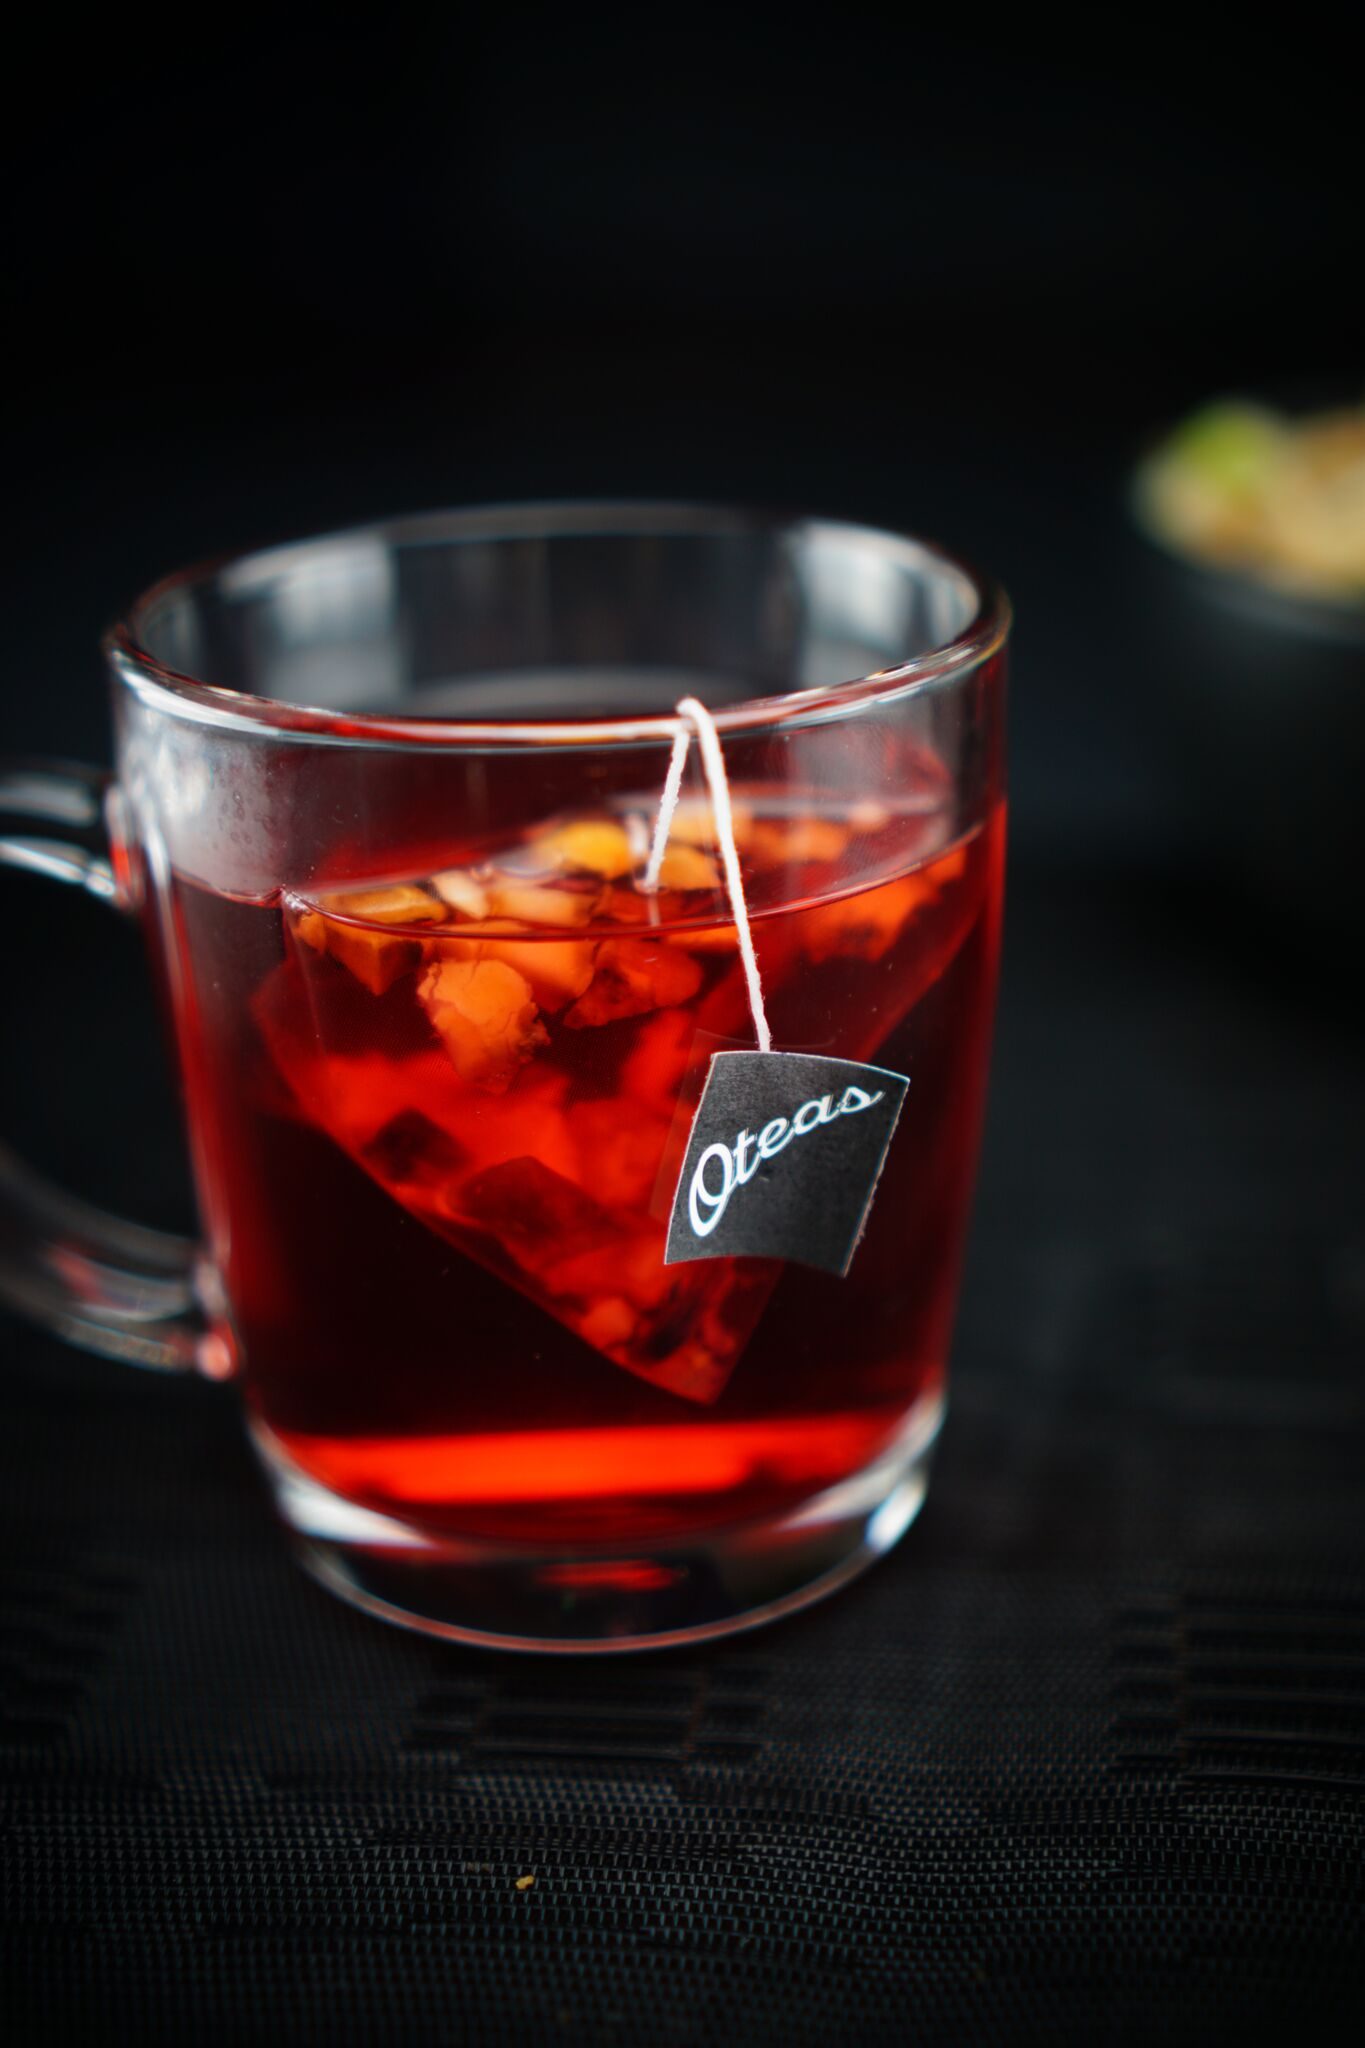 A Better Brew. - Tea is the second most popular beverage consumed world-wide. But, not every cup is created equal... Why not treat yourself to a better brew? Energetic, soothing, medicinal or a sweet and spicy treat — Oteas offers an exquisite experience in every sip.